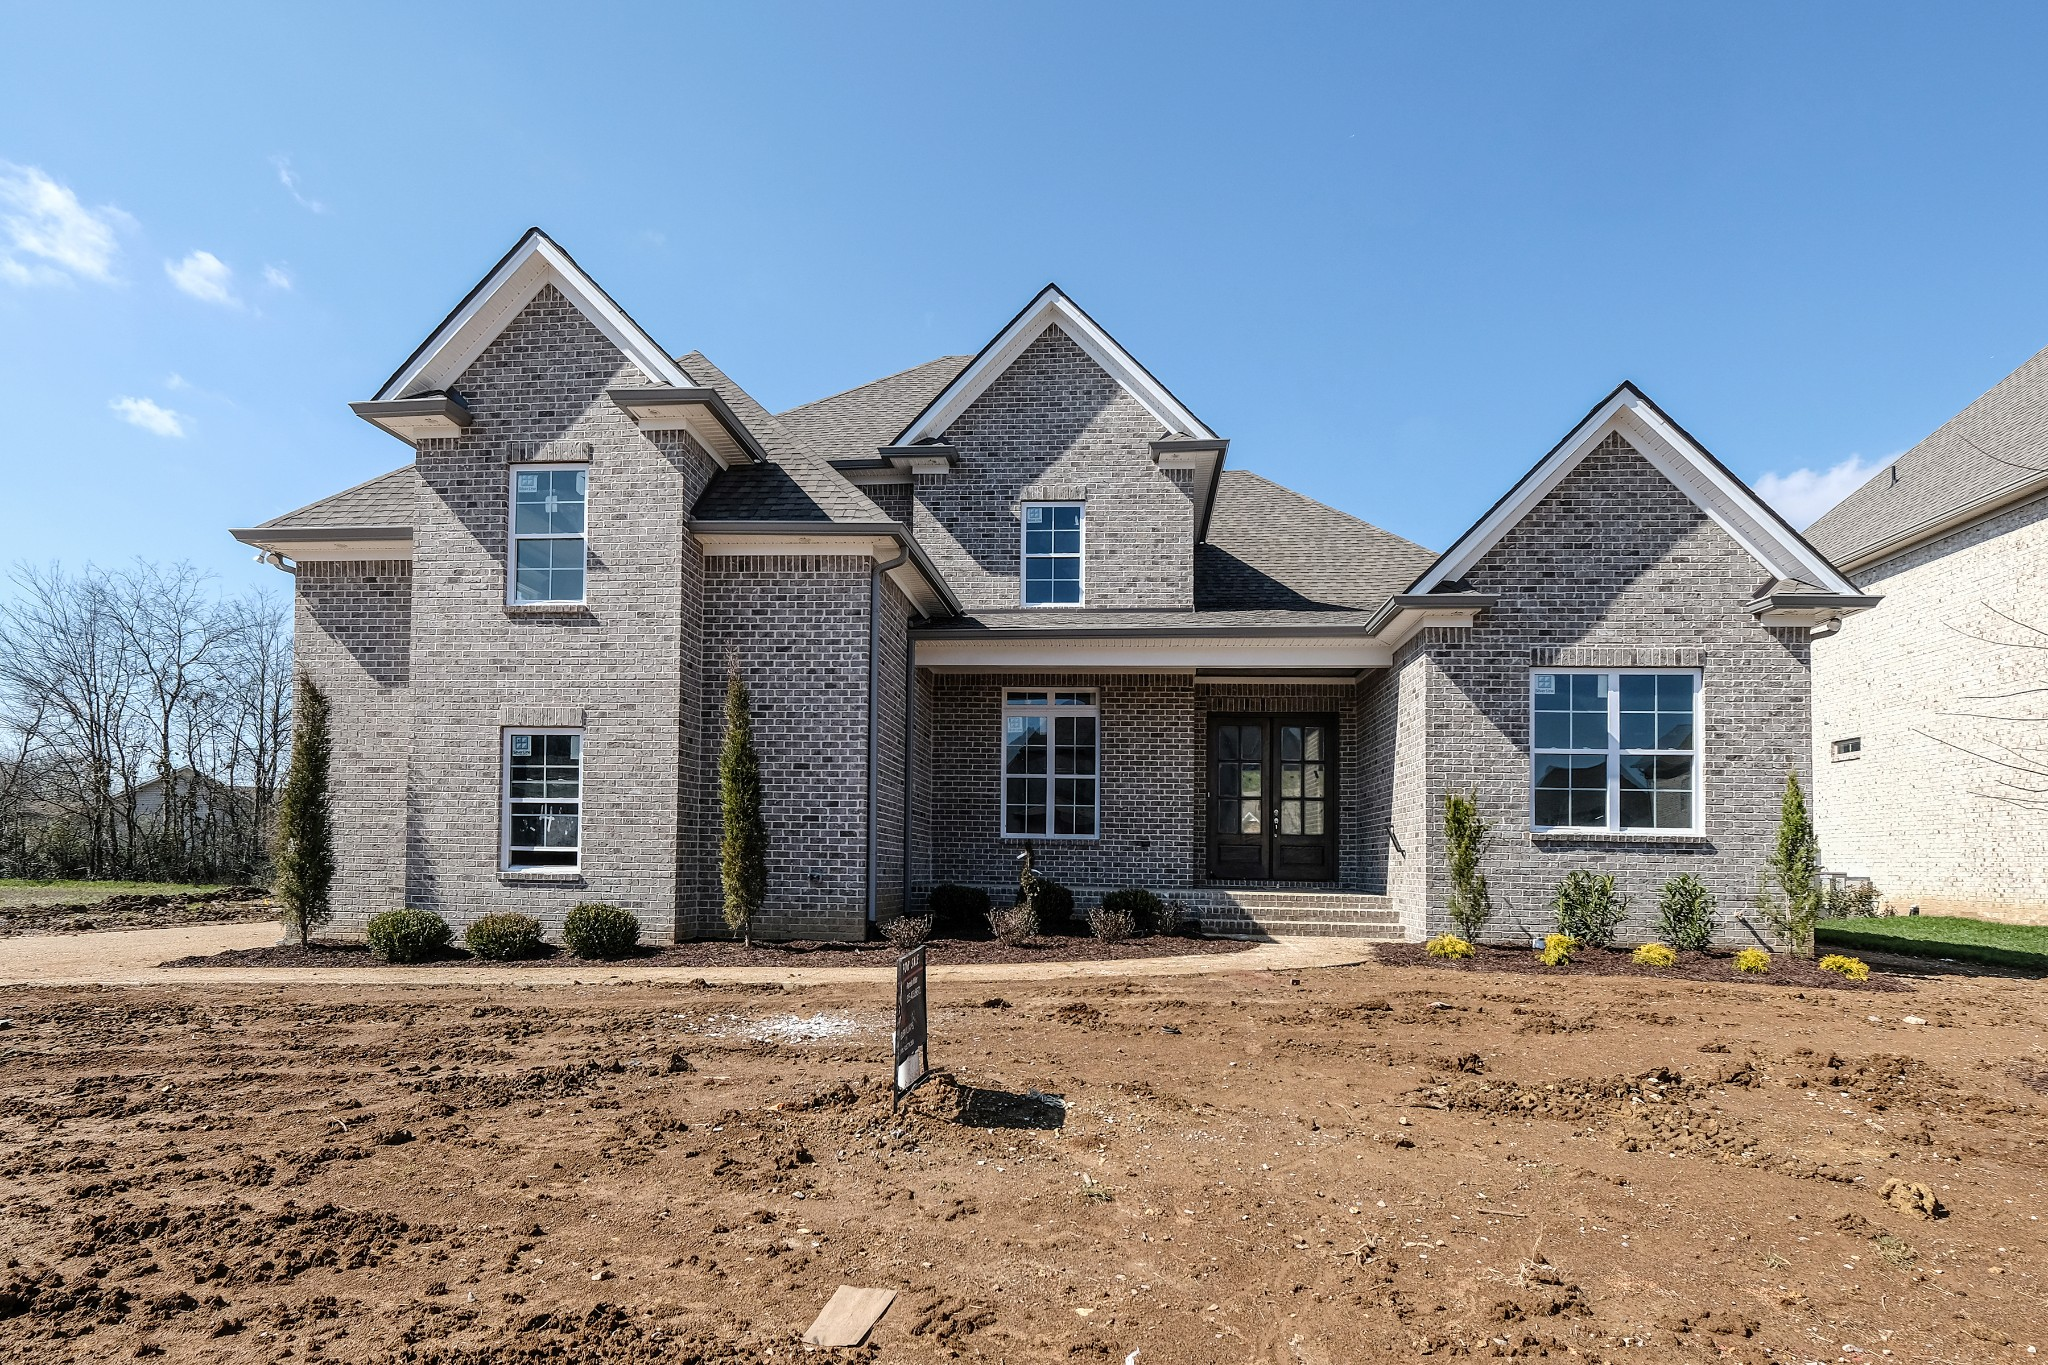 2057 Autumn Ridge Way (Lot 244), Spring Hill, Tennessee